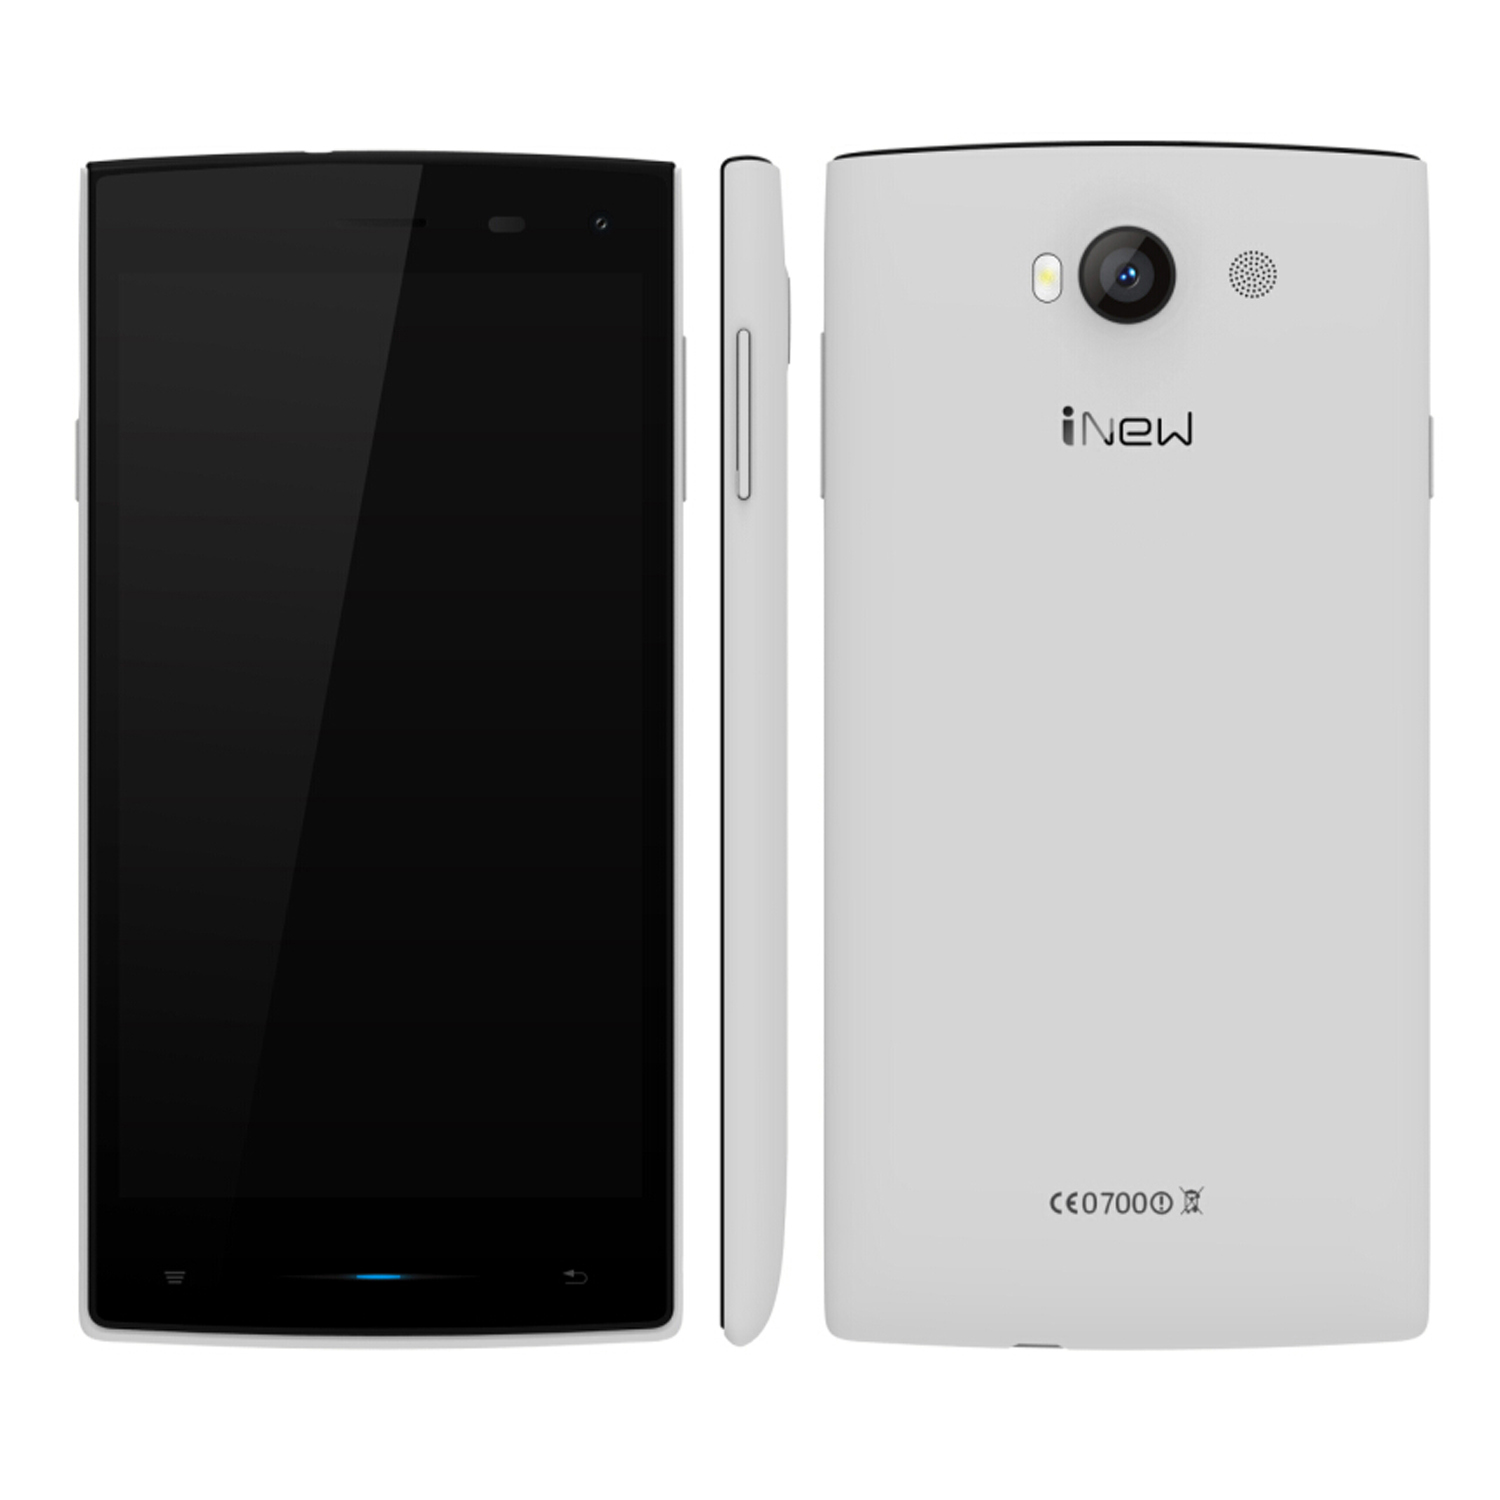 iNew V1 Smartphone Android 4.4 MTK6582 5.0 Inch 1GB 8GB 3G White